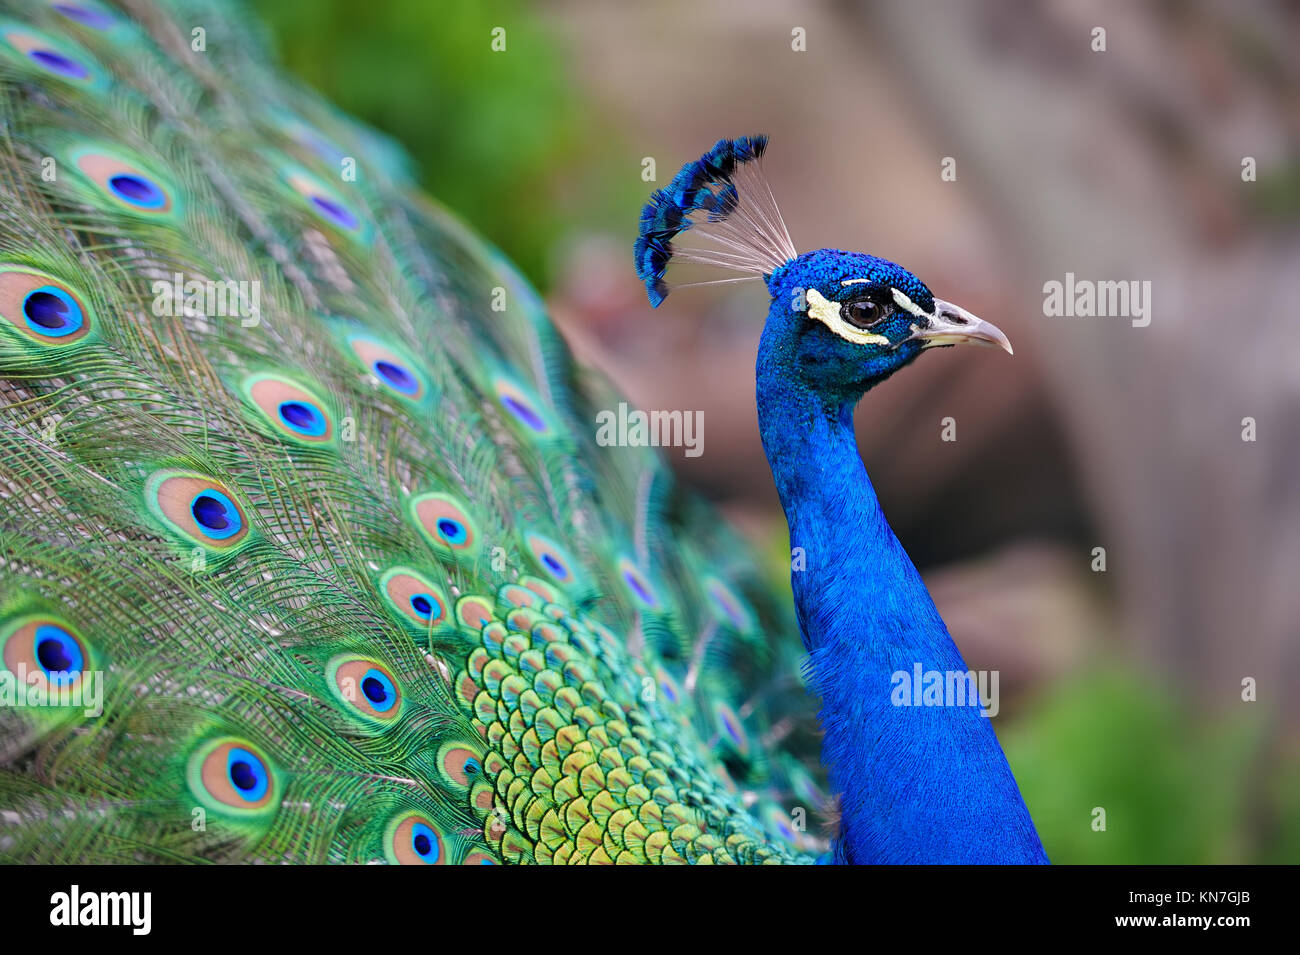 Portrait of beautiful peacock with feathers out - Stock Image